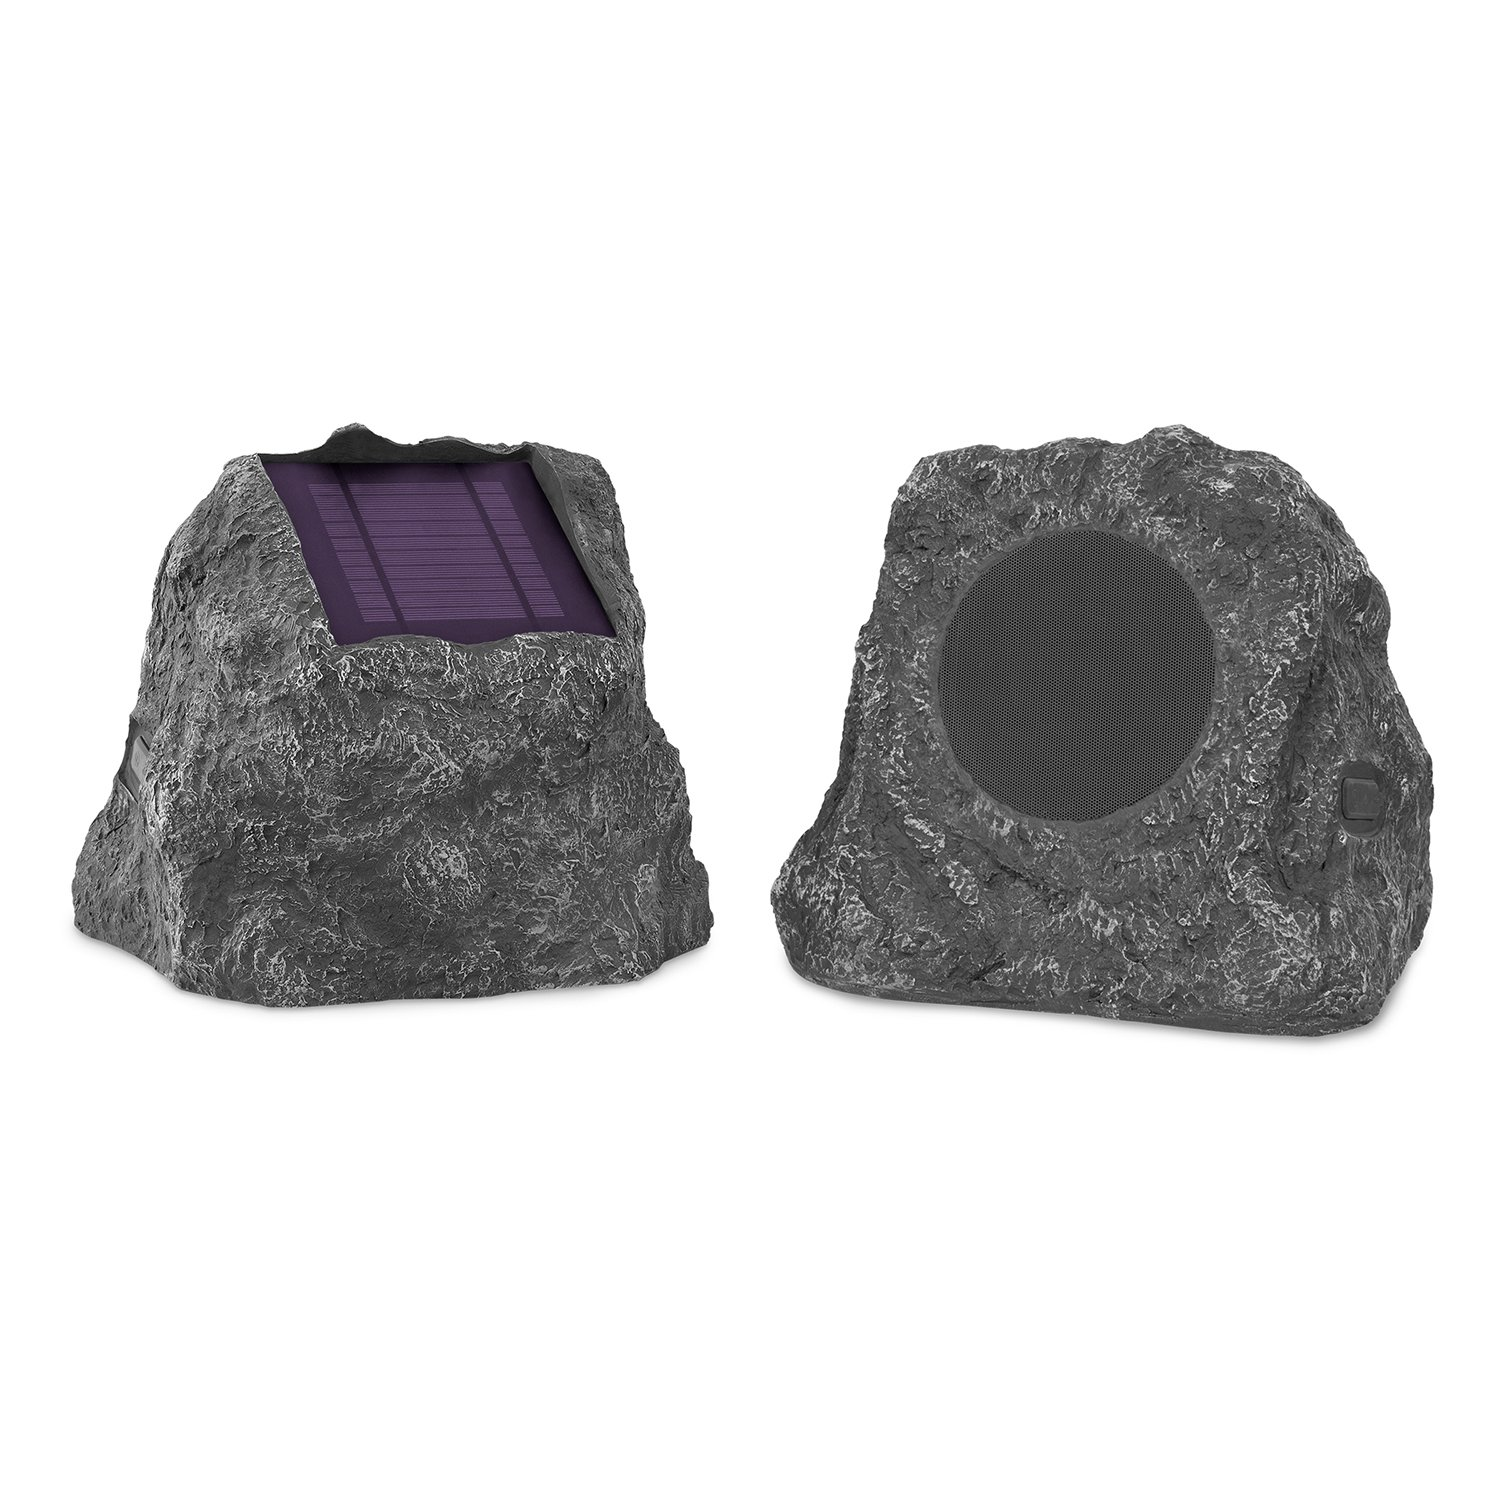 Innovative Technology Premium 5-Watt Bluetooth Outdoor Rock Speakers with A/C Adaptor, Built In Rechargeable 5200mAh Battery and Solar Panels, Pair, Charcoal by it.innovative technology